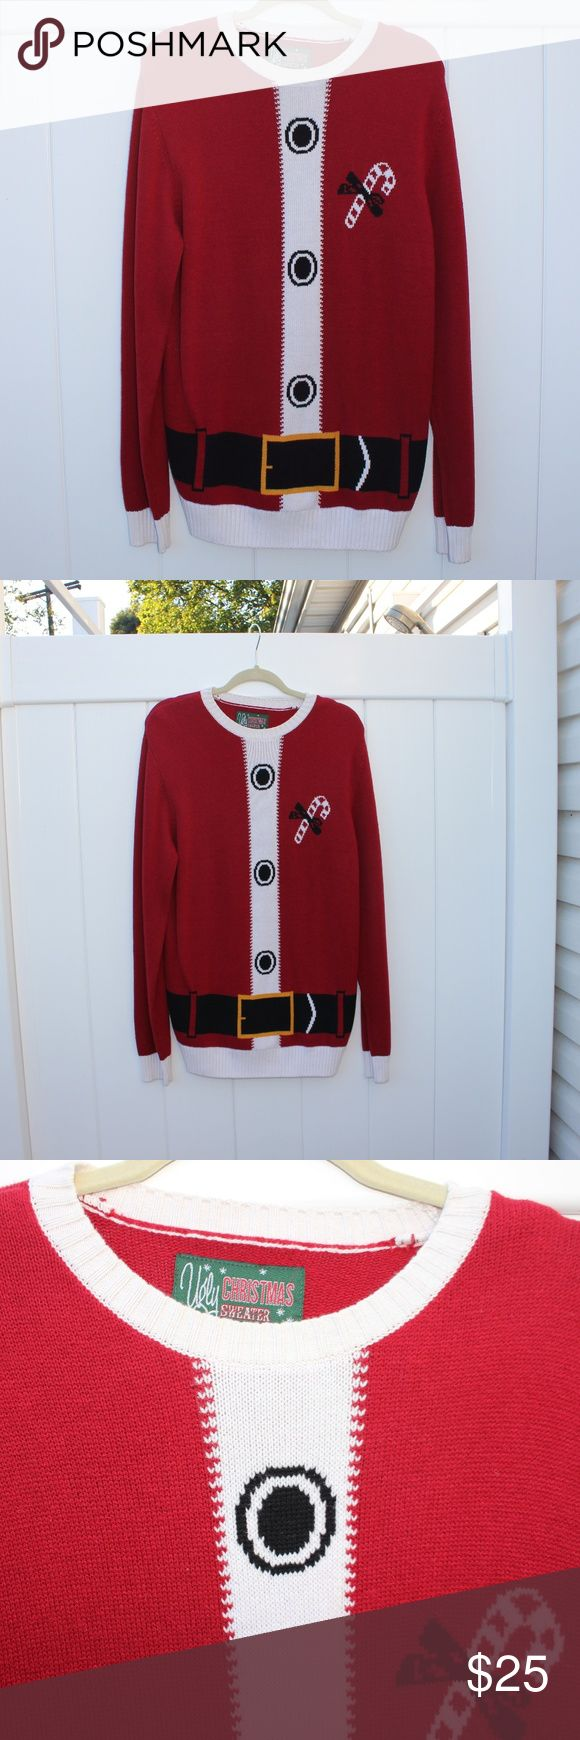 "[Ugly Christmas Sweater] Santa Suit Long Sweater So perfect for Christmas! Ugly Christmas Sweater brand long sweater for the holiday season! The sweater is a Santa suit design with a candy cane on the chest. The sweater shows some wear but is overall in good used condition!  Size- Large RN 63925 Length from the top of the shoulder to the bottom is about 32"" Armpit to Armpit about 21"" across Unisex sweater - for both men and women!  For a woman this sweater would look adorable over black…"